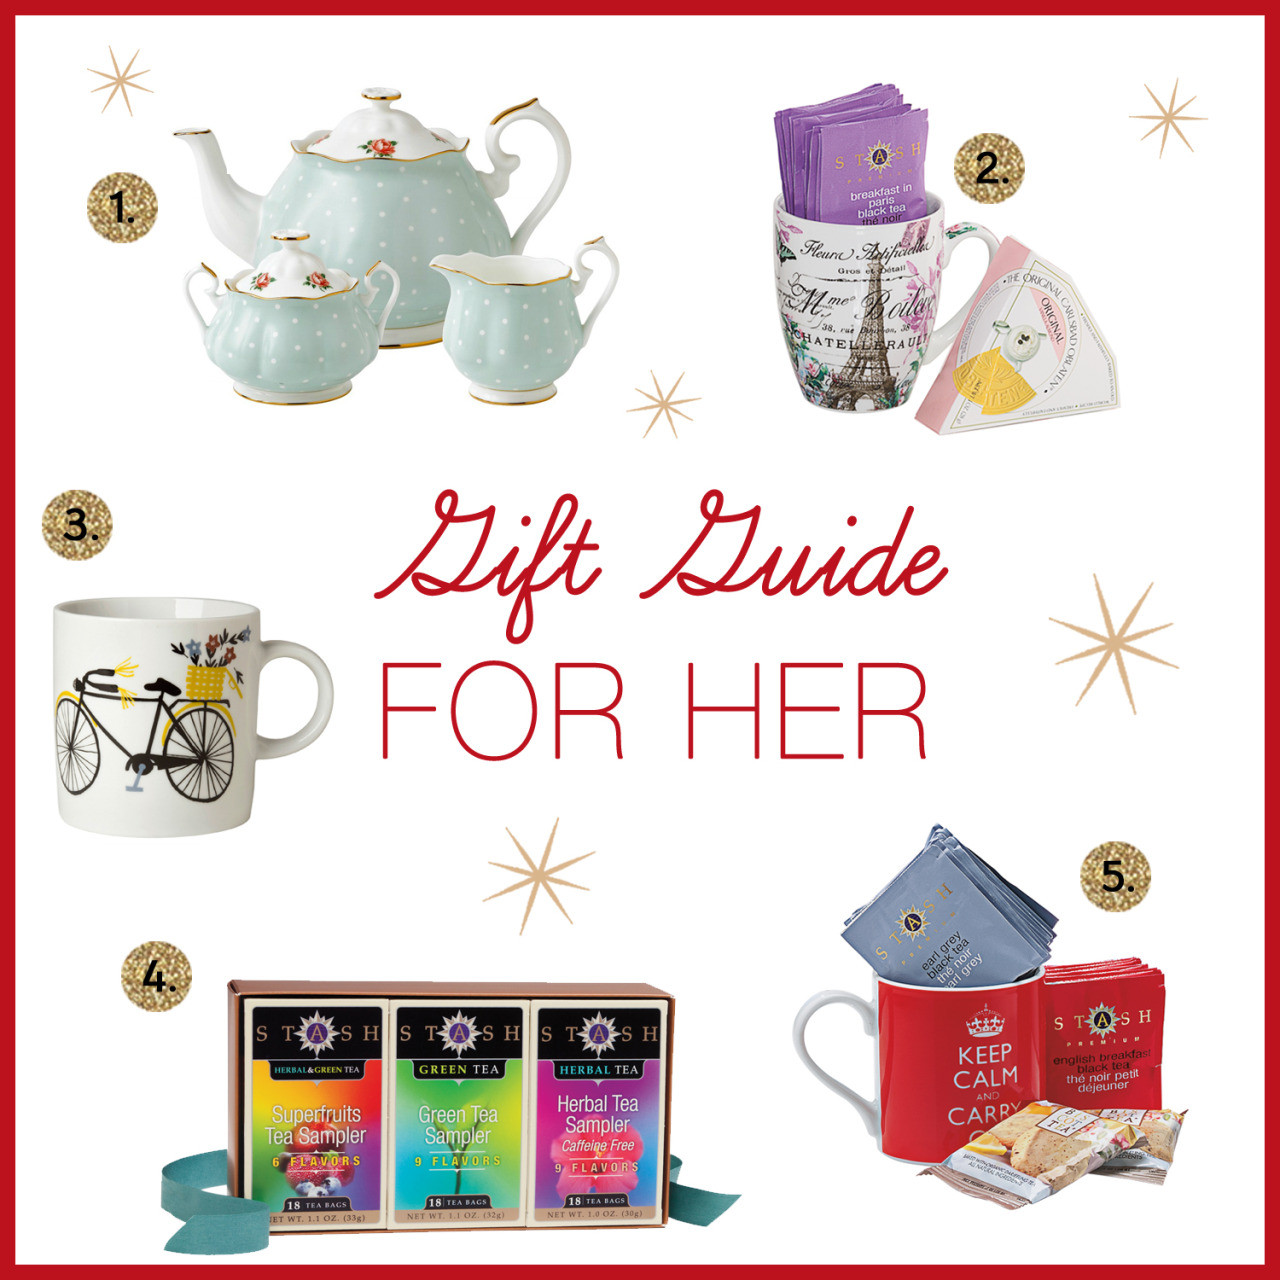 Best ideas about Fun Gift Ideas For Her . Save or Pin Unique and fun t ideas for her [[MORE]] 1 Now.